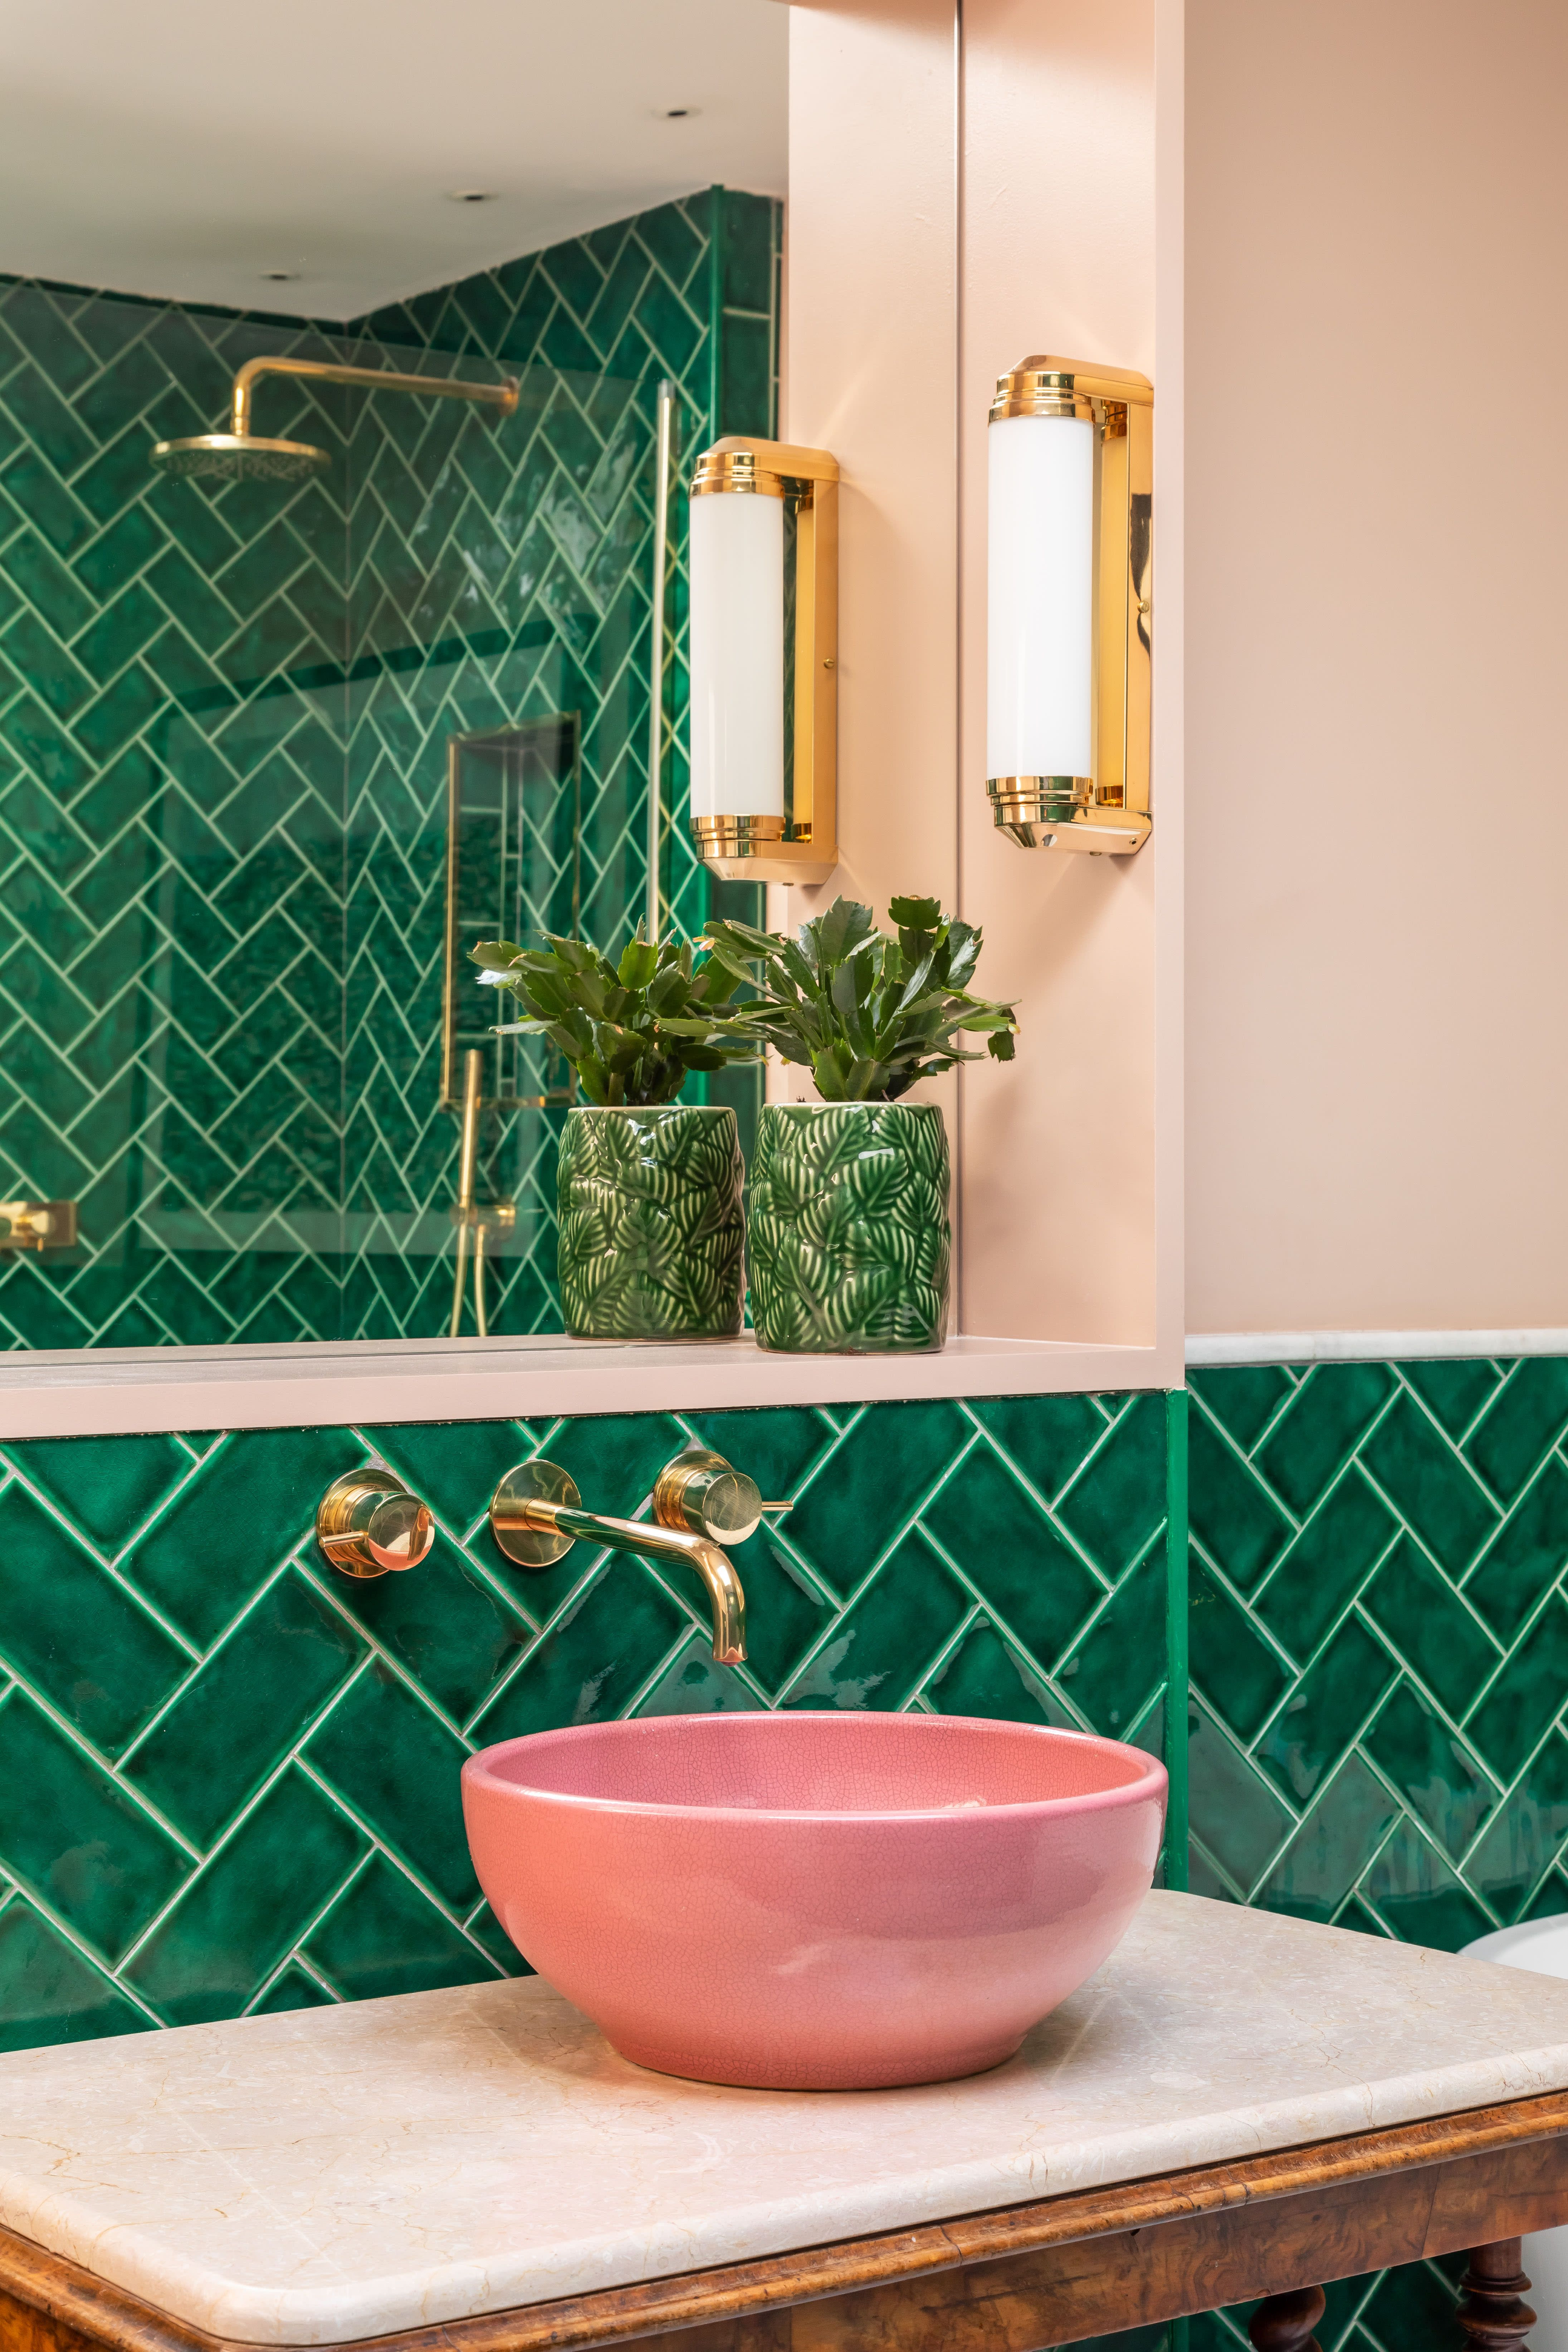 9 Colorful Bathroom Sinks To Give Your Space A Bright Refresh